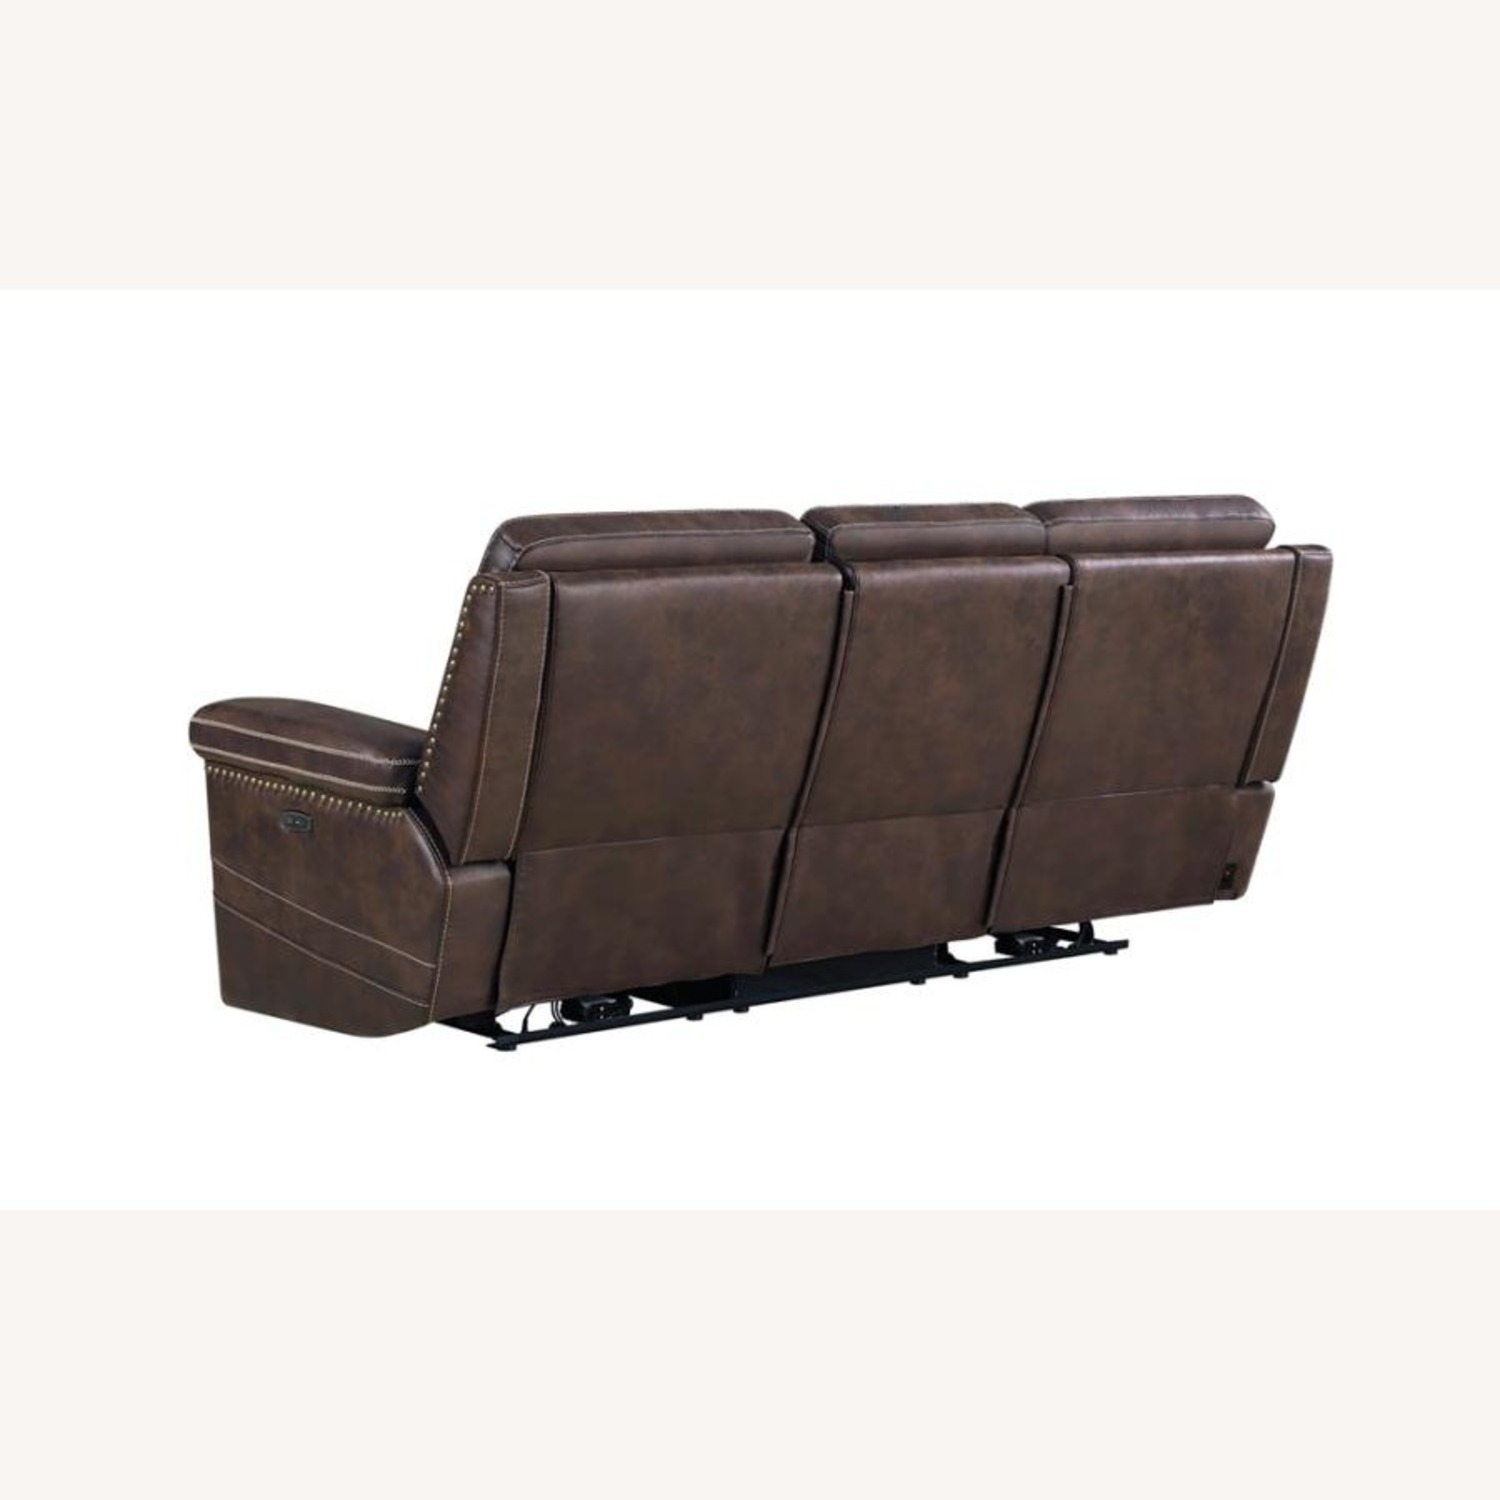 Power2 Sofa In Rich Brown Faux Suede - image-3